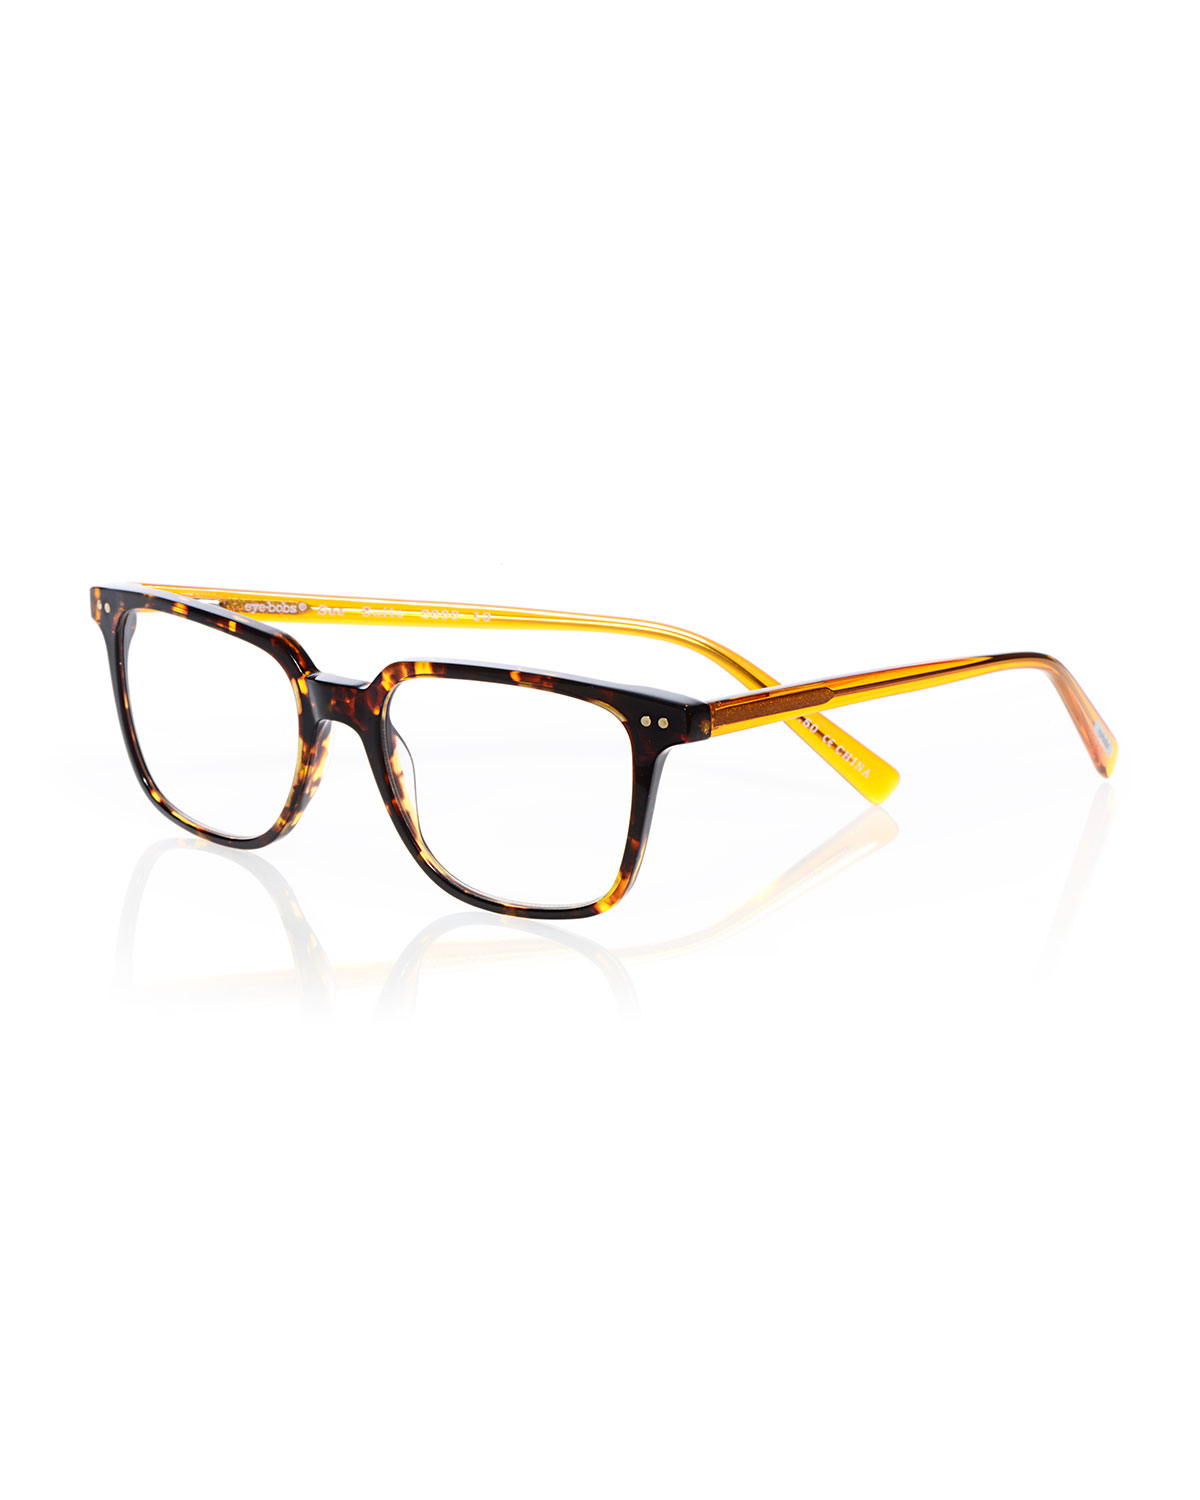 EYEBOBS C Suite Square Acetate Reading Glasses in Tortoise/Yellow